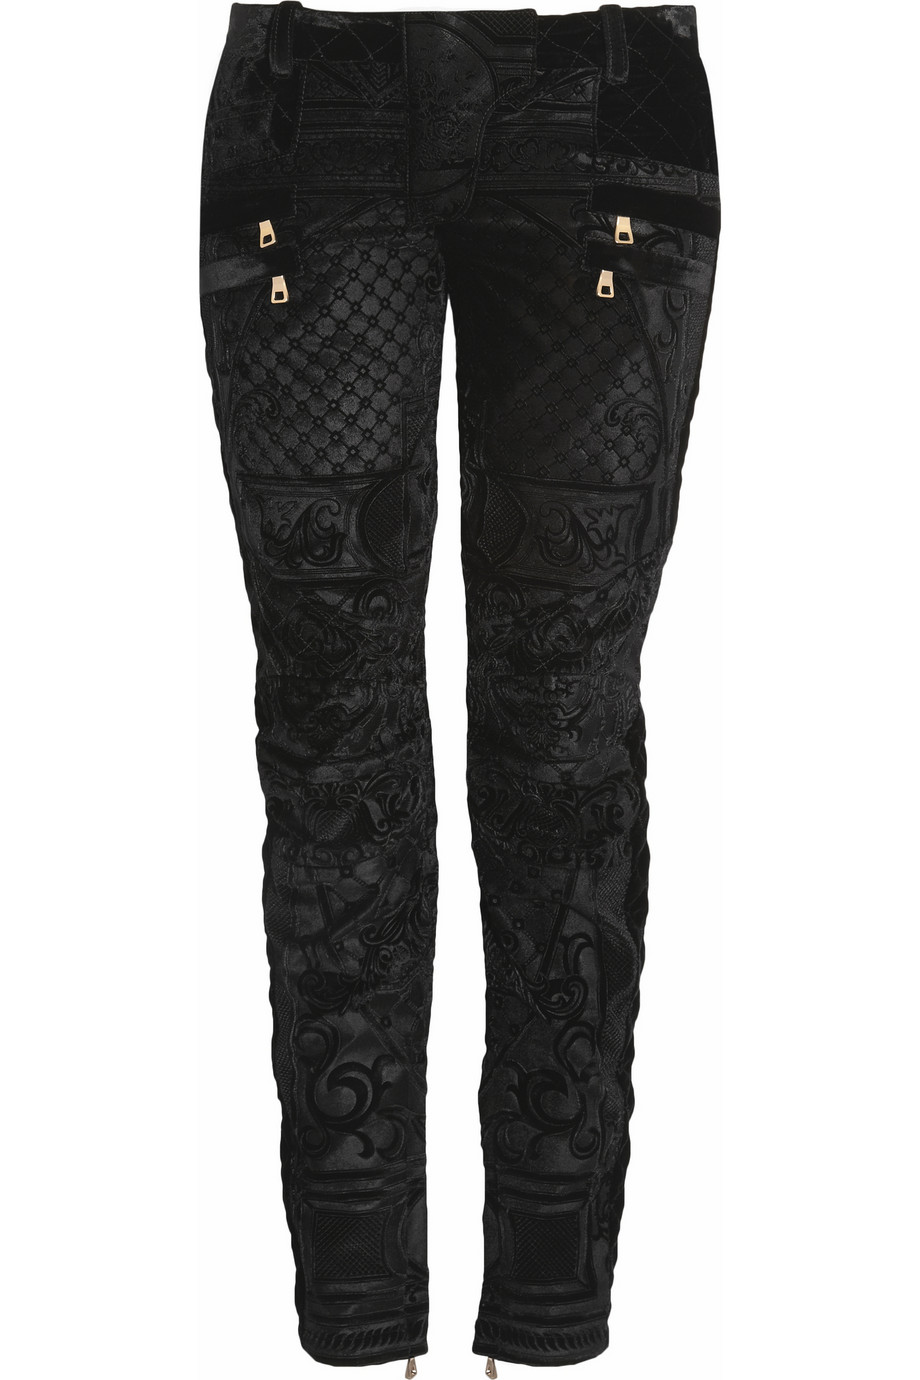 Balmain Velvet-brocade moto-style low-rise skinny jeans – 88% at THE OUTNET.COM